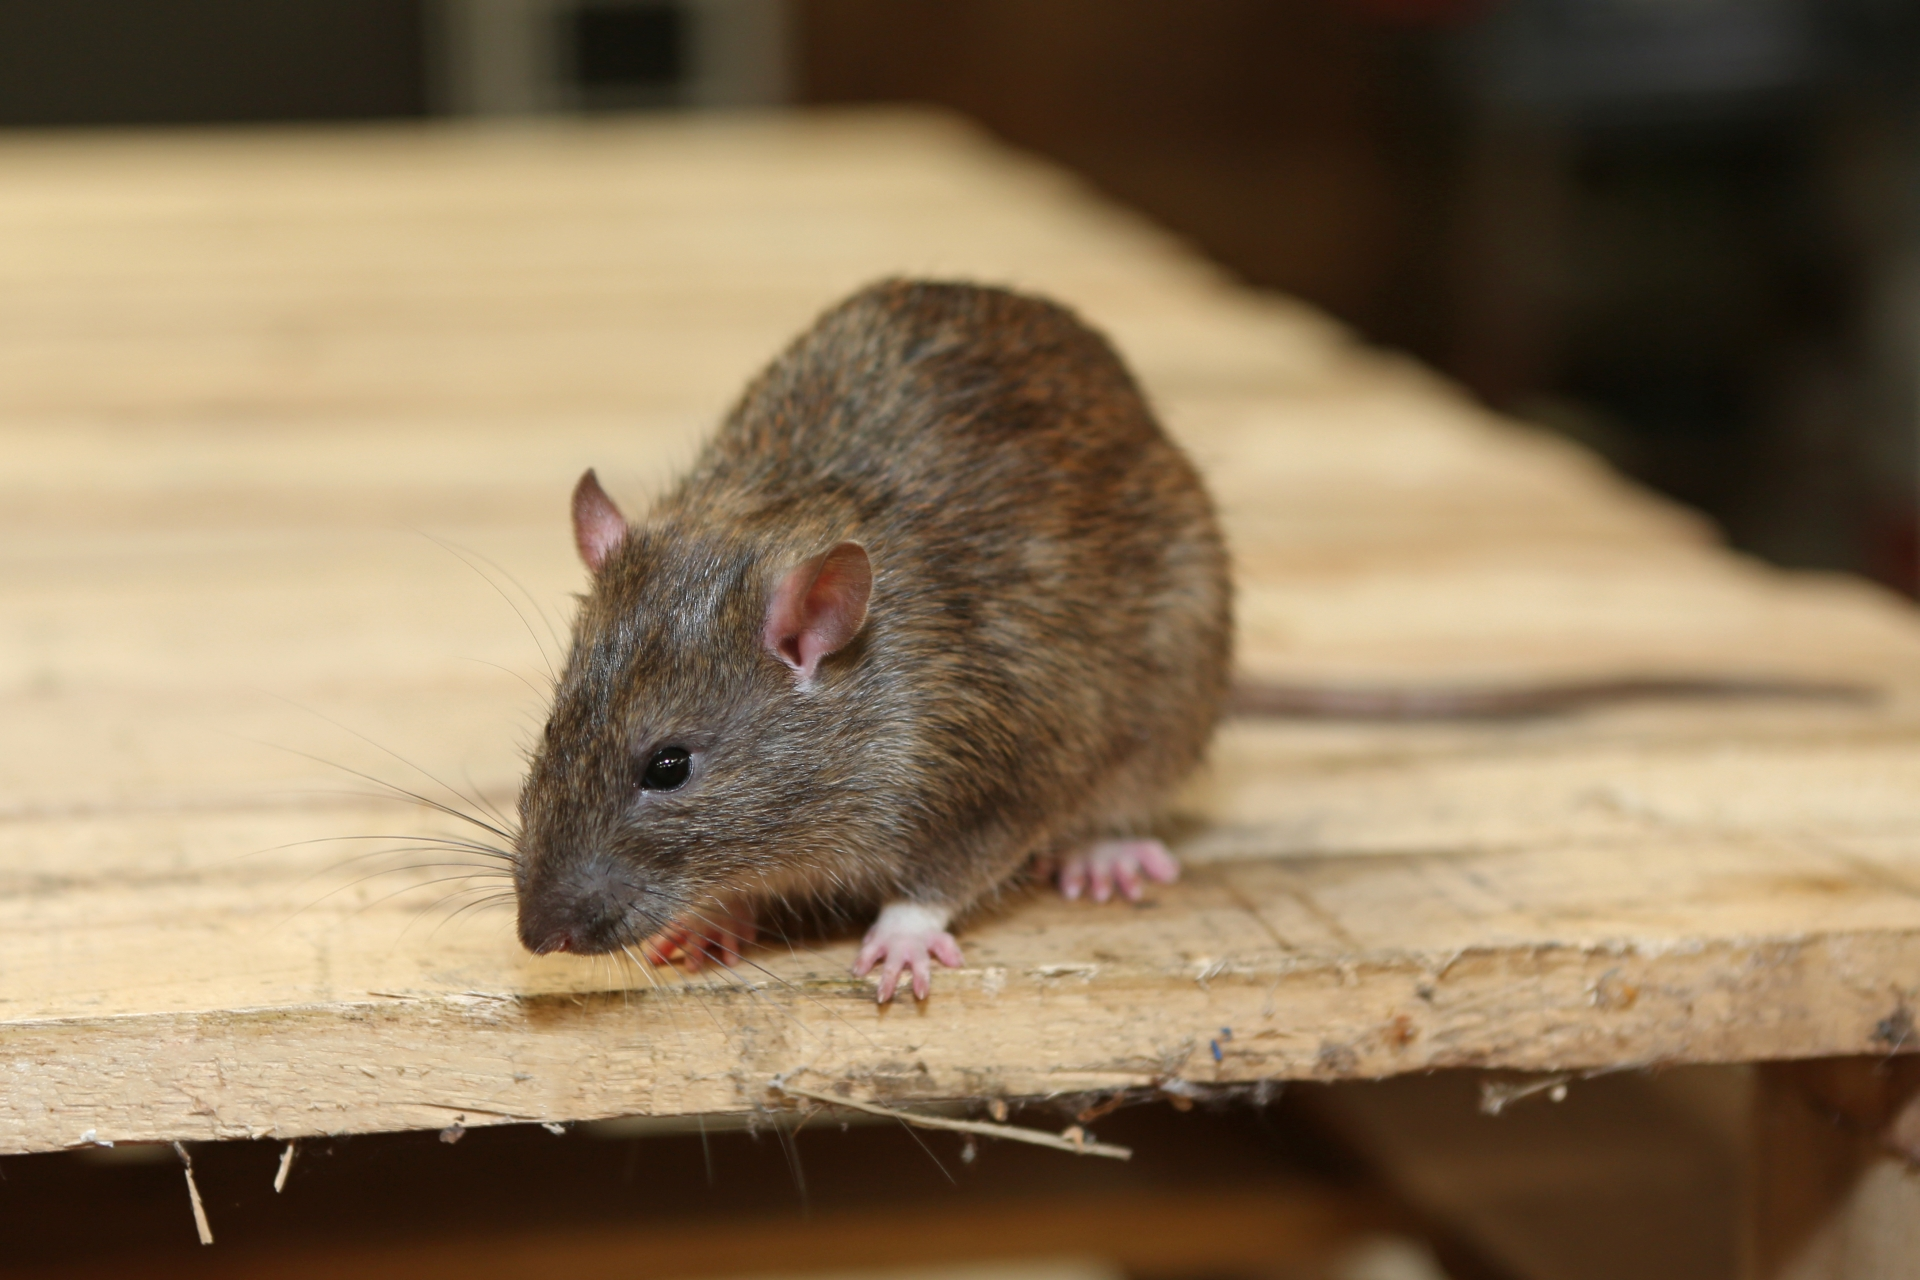 Rat Infestation, Pest Control in Clerkenwell, Finsbury, Barbican, EC1. Call Now 020 8166 9746